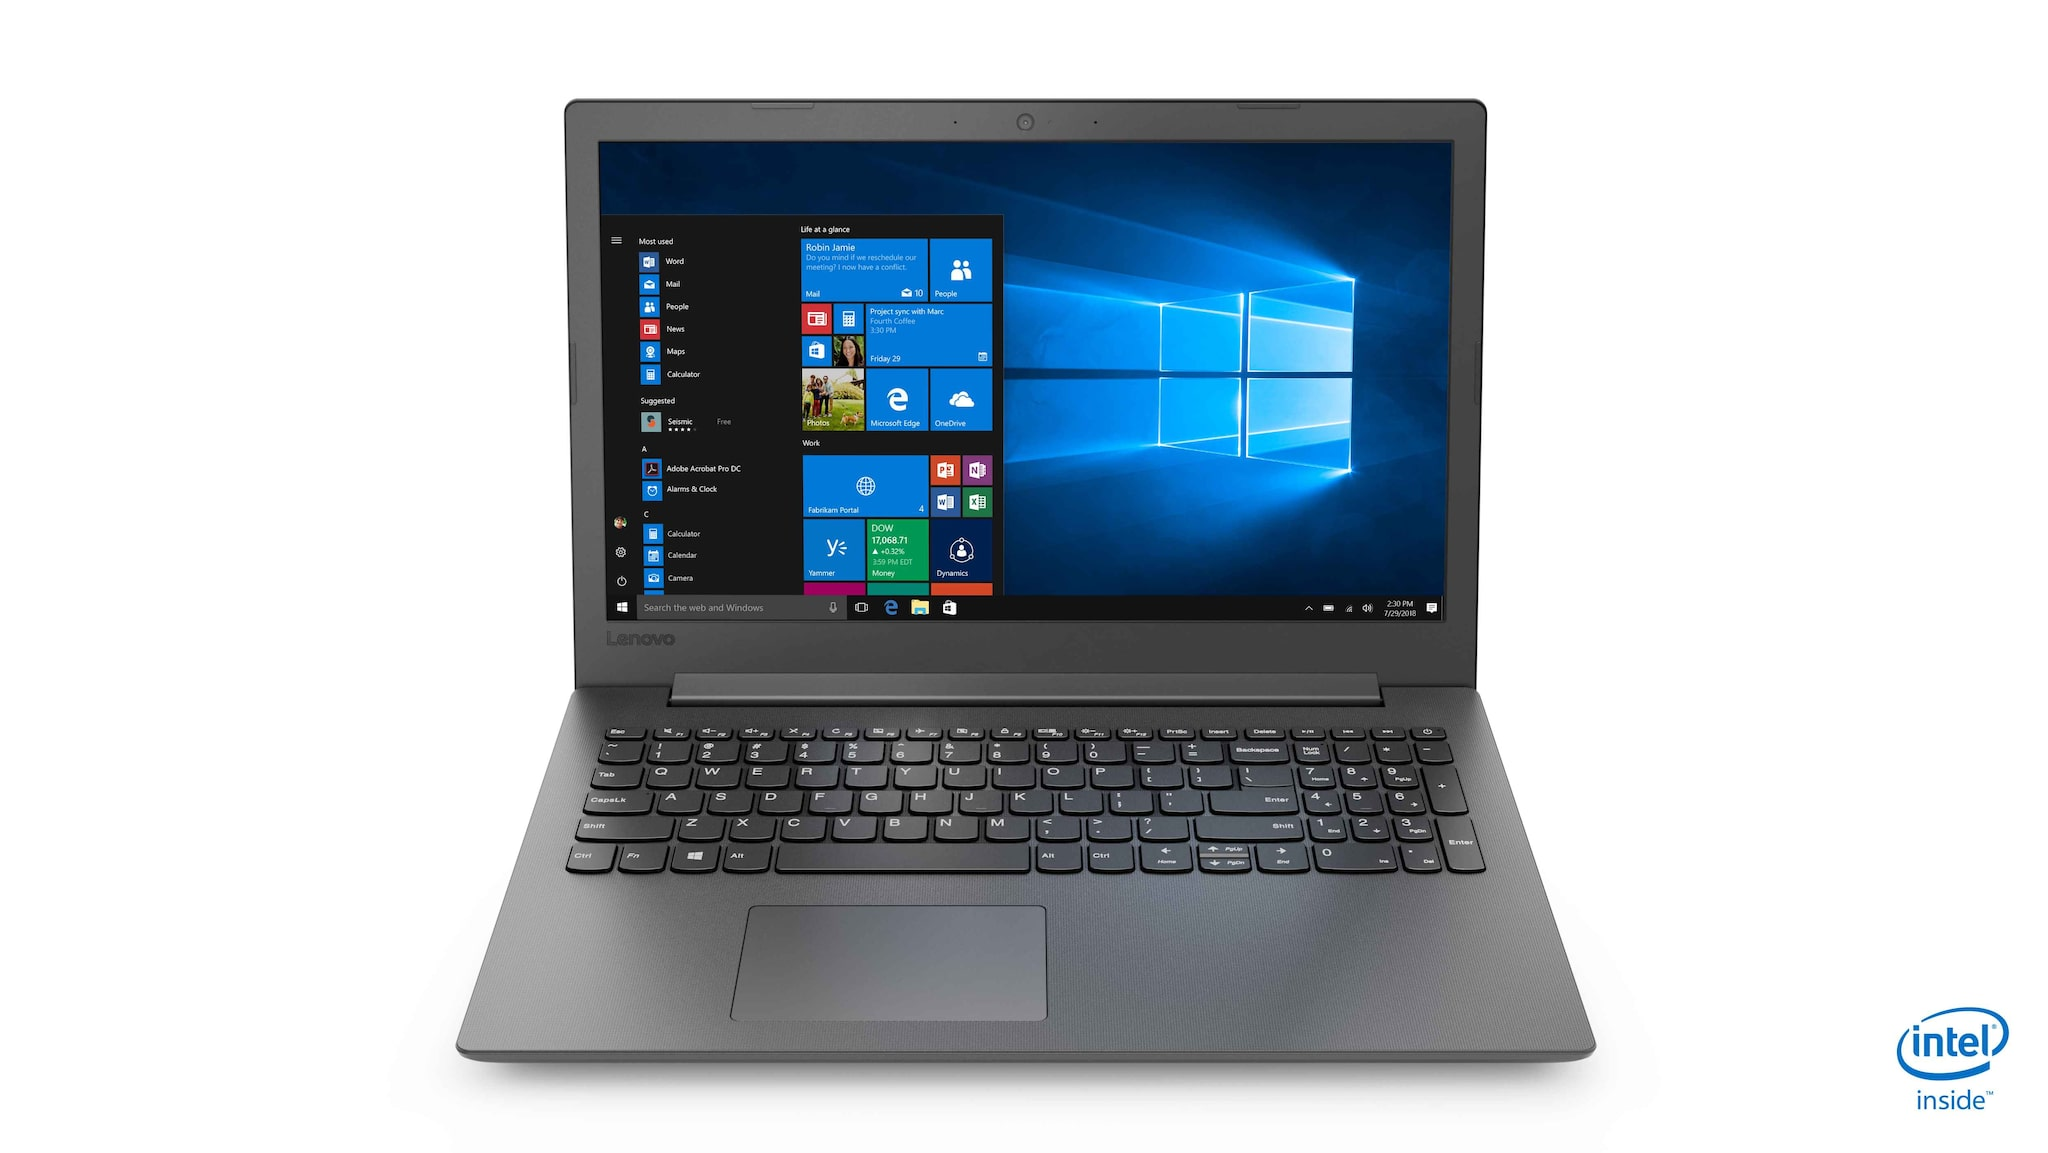 Lenovo Ideapad 130 (Core i3 - 6th Gen/4 GB RAM/1 TB HDD/15.6 Inch/DOS) 81H70059IN (Black, 2.2 Kg)